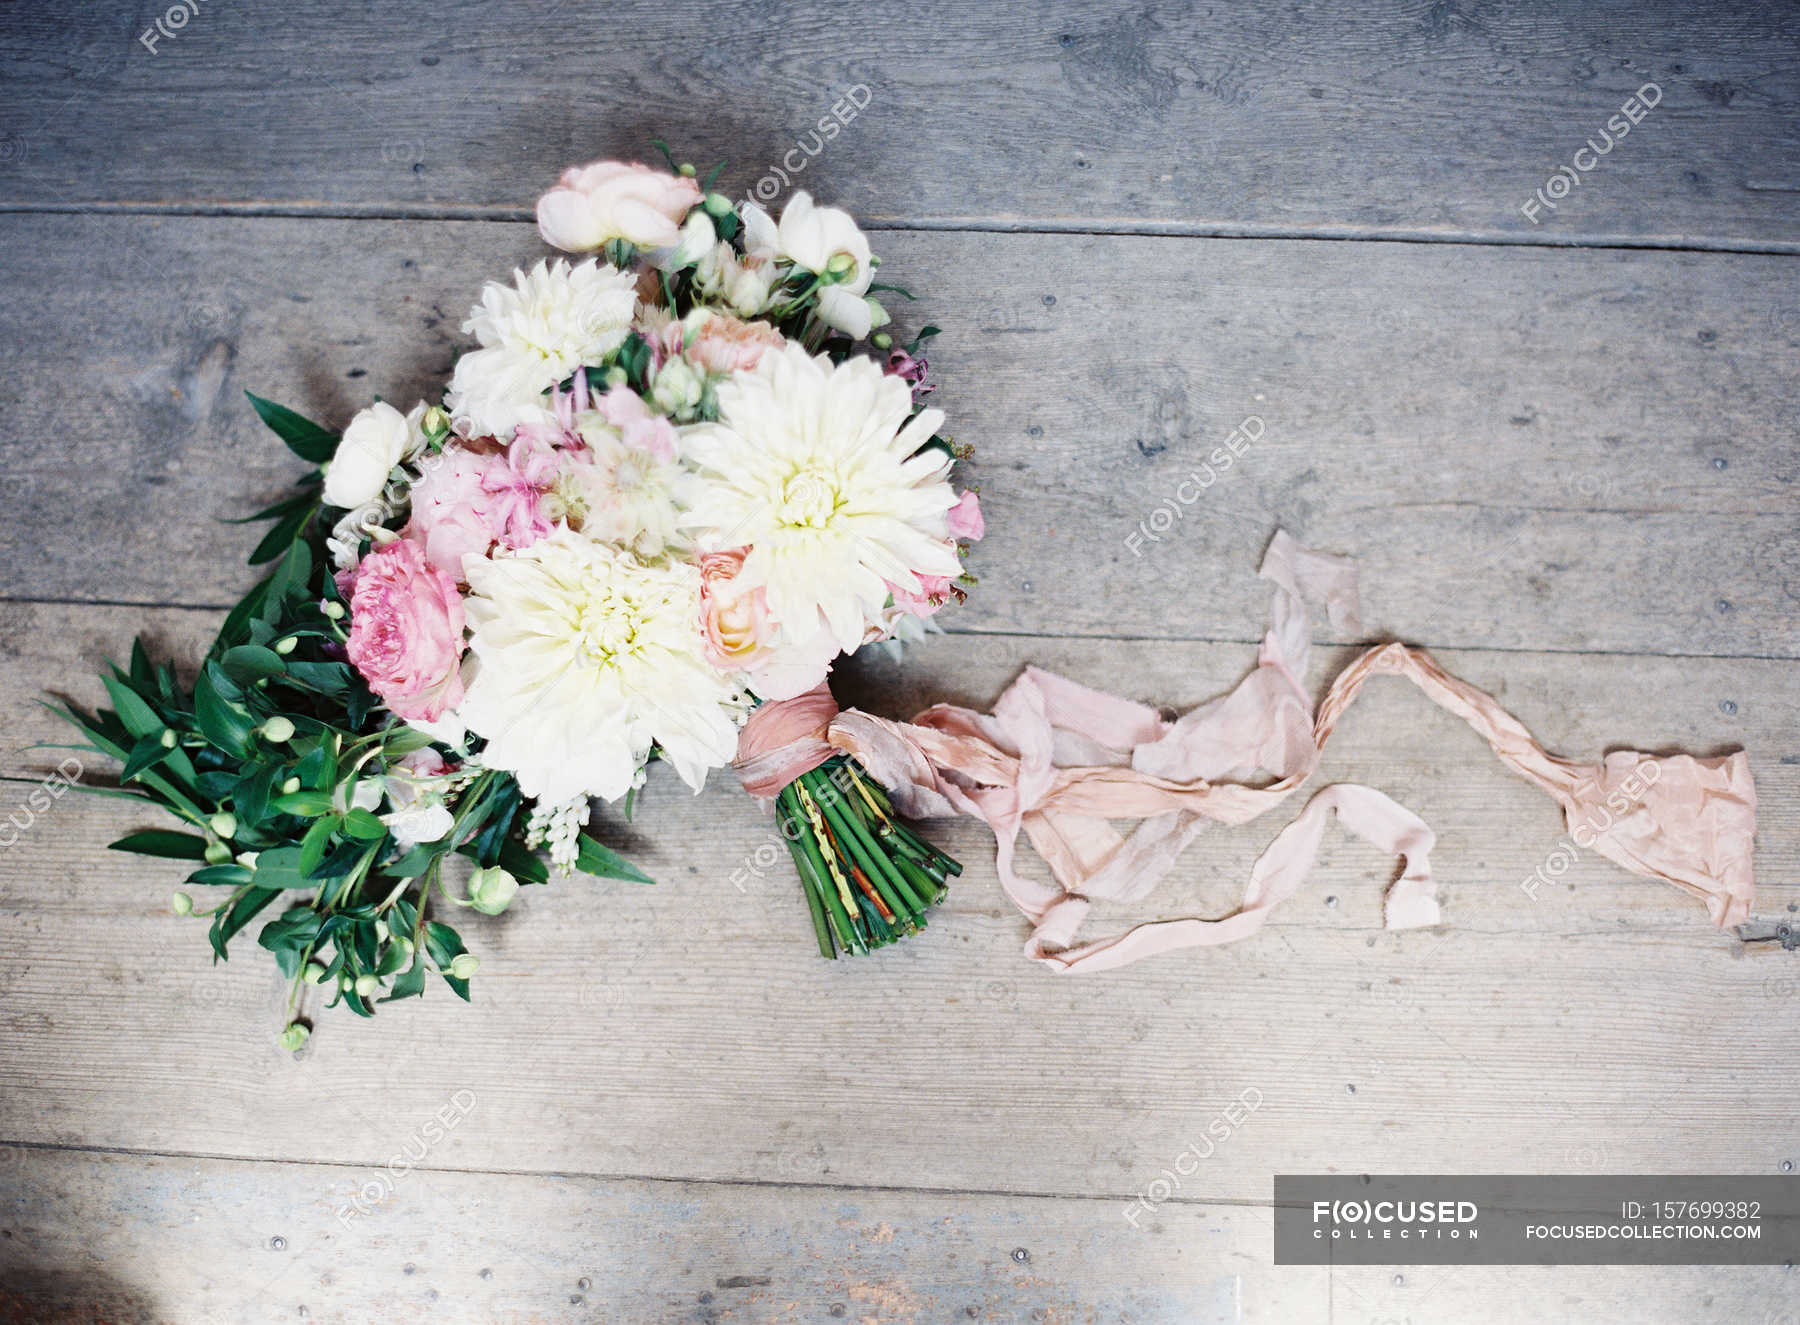 Wedding Bouquet With Daisies Stock Photo 157699382